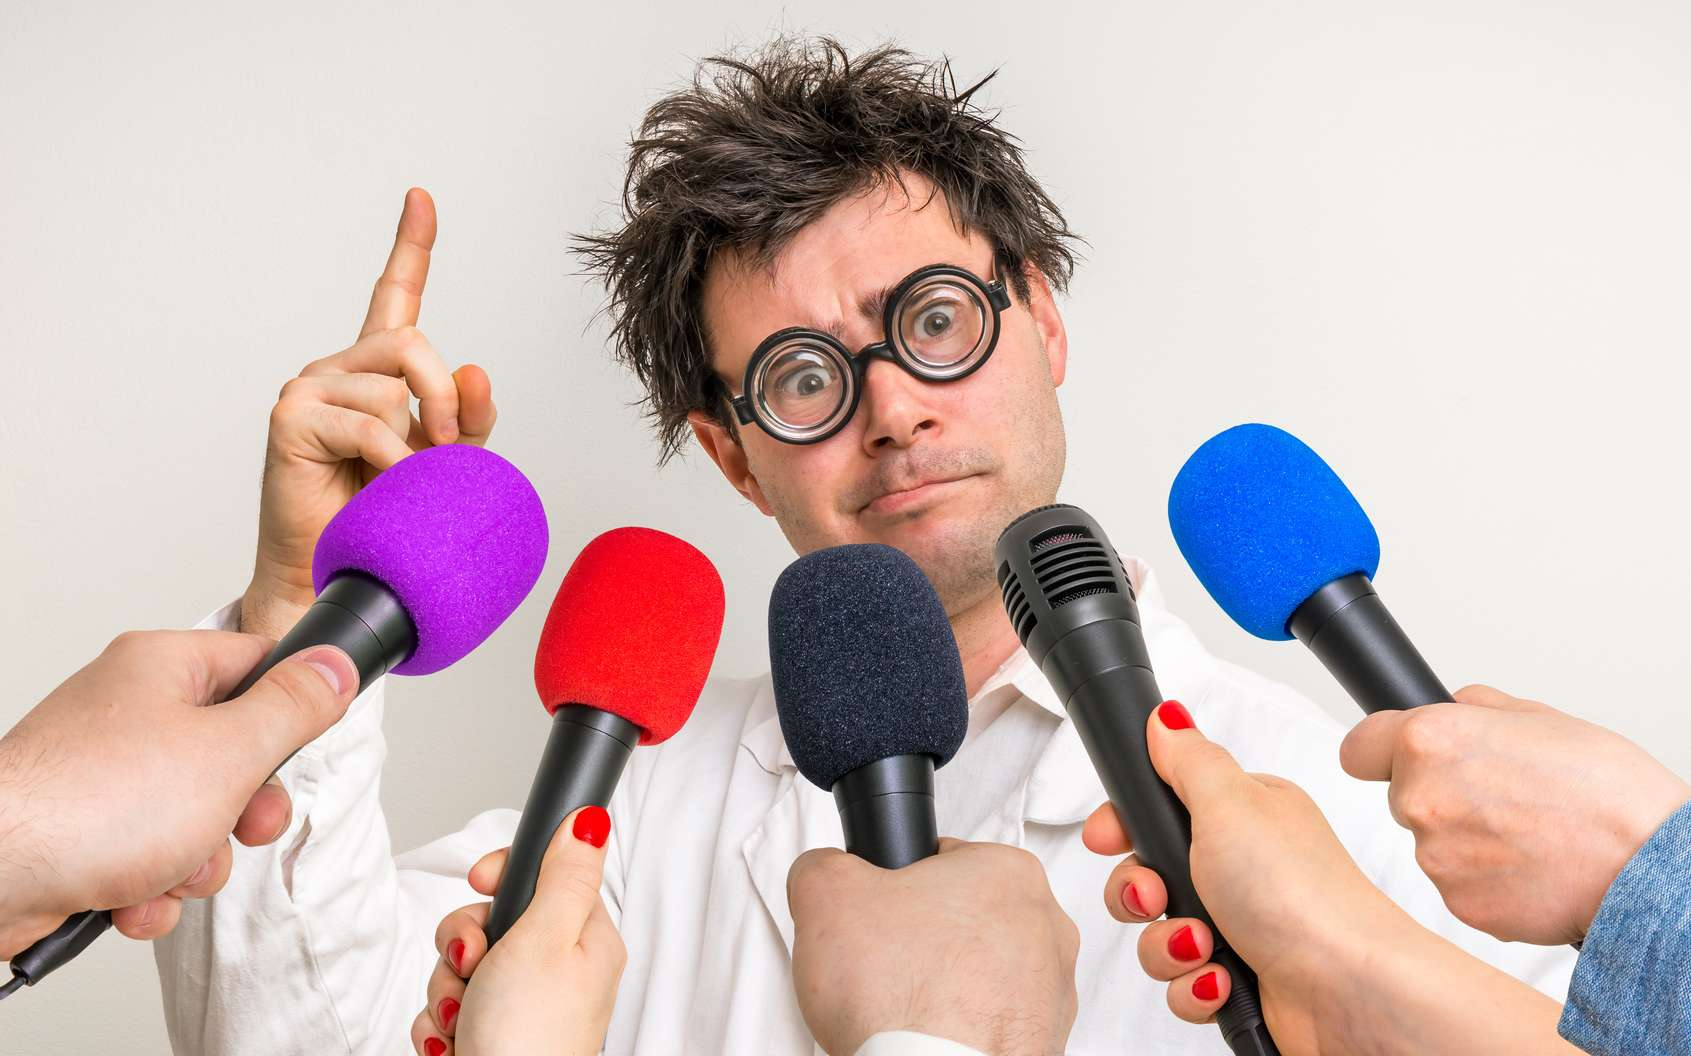 Un scientifique interviewé par des journalistes. © adriano_cz, Fotolia